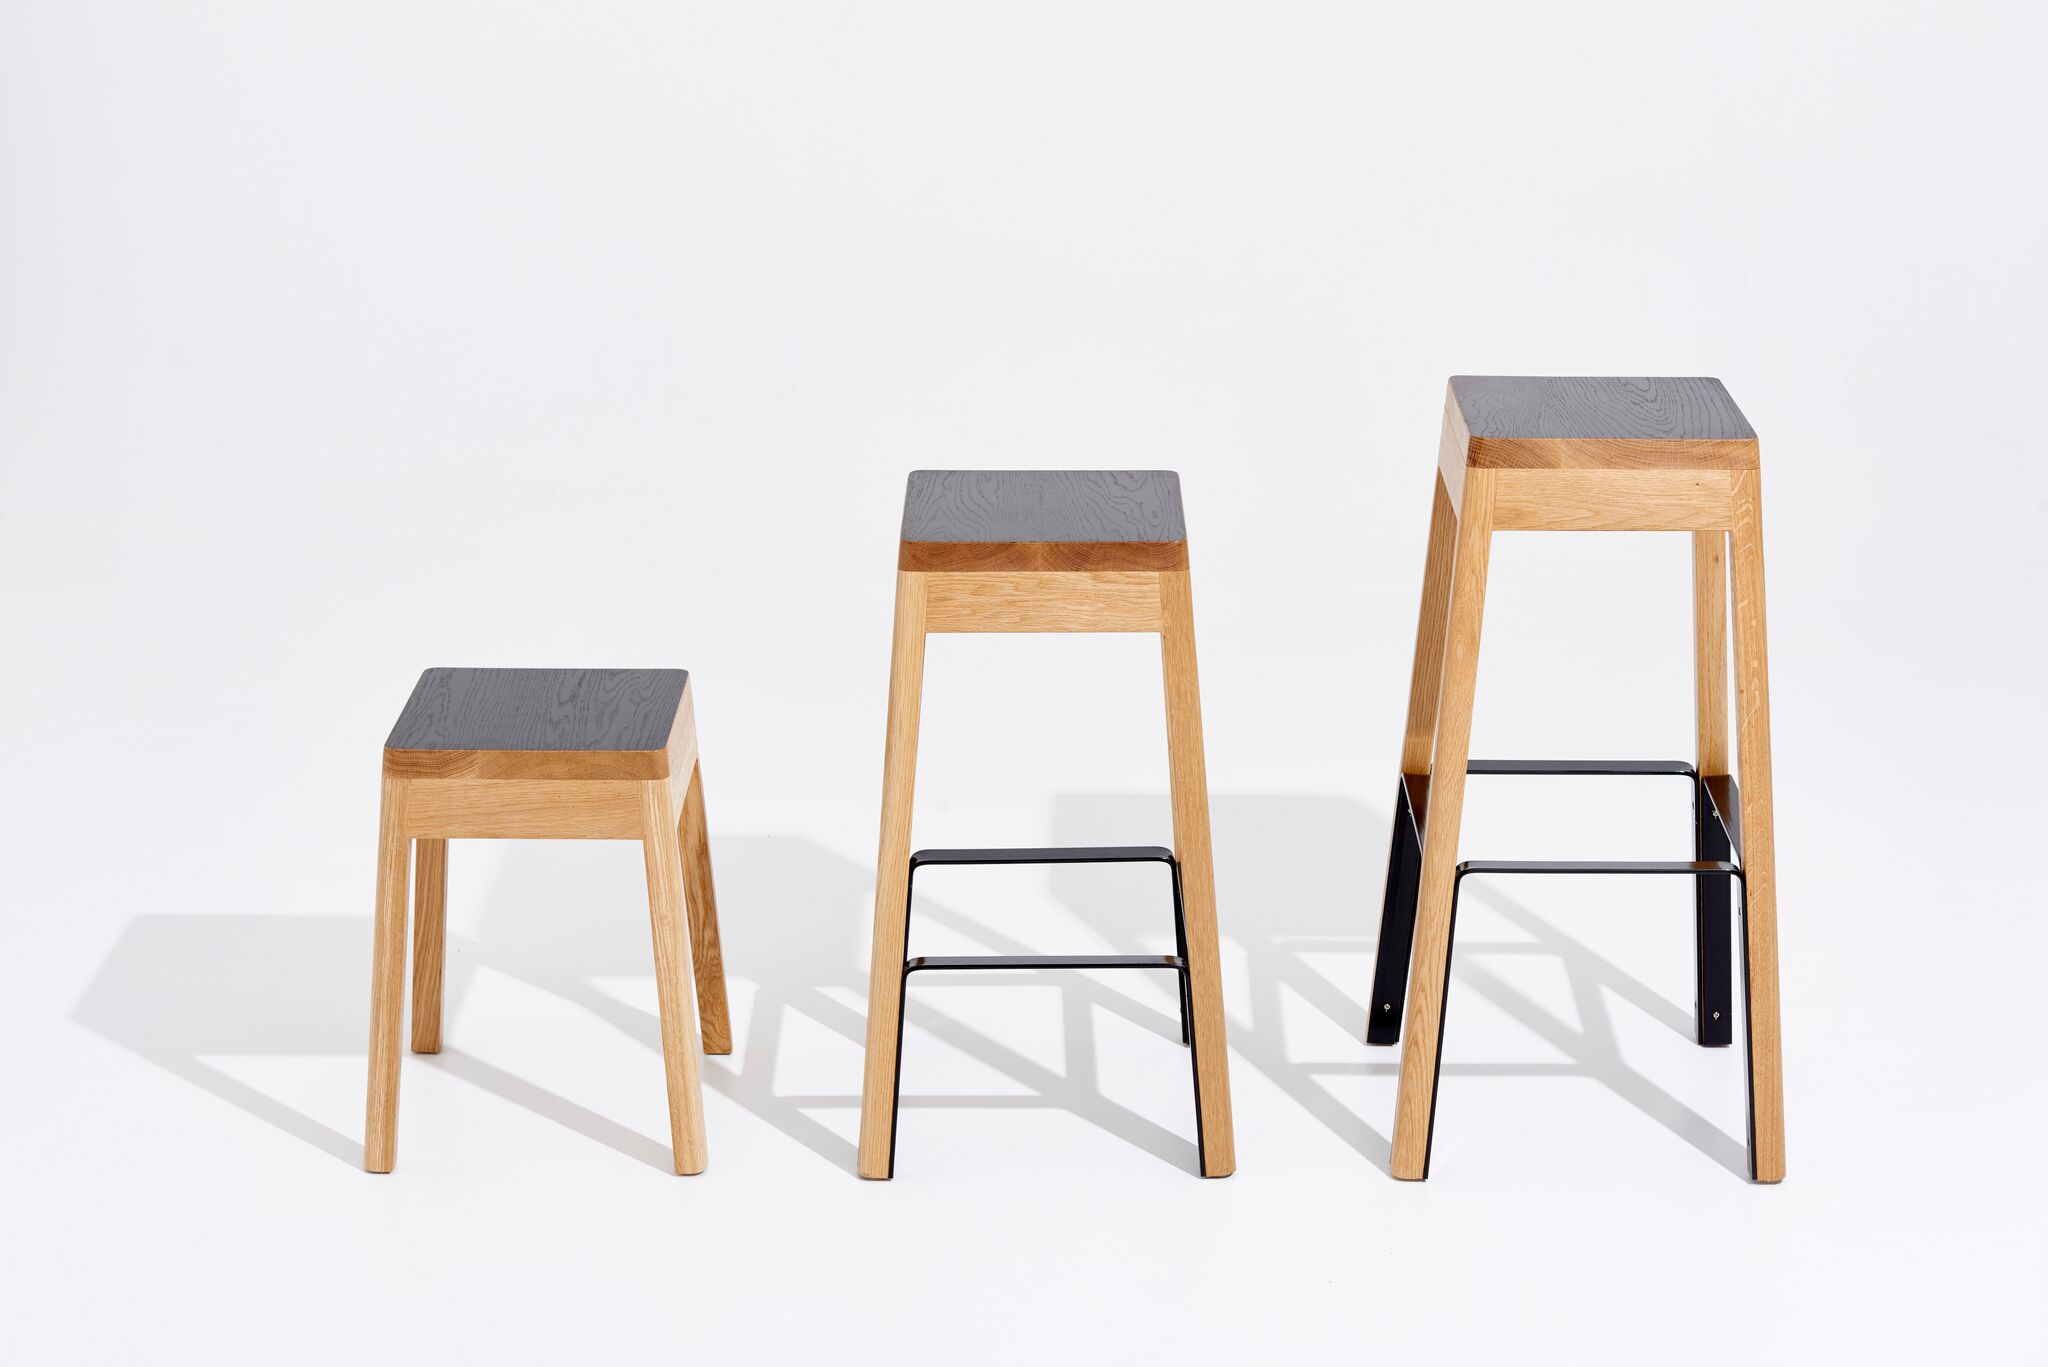 This product pairs timber and steel together through stylish design